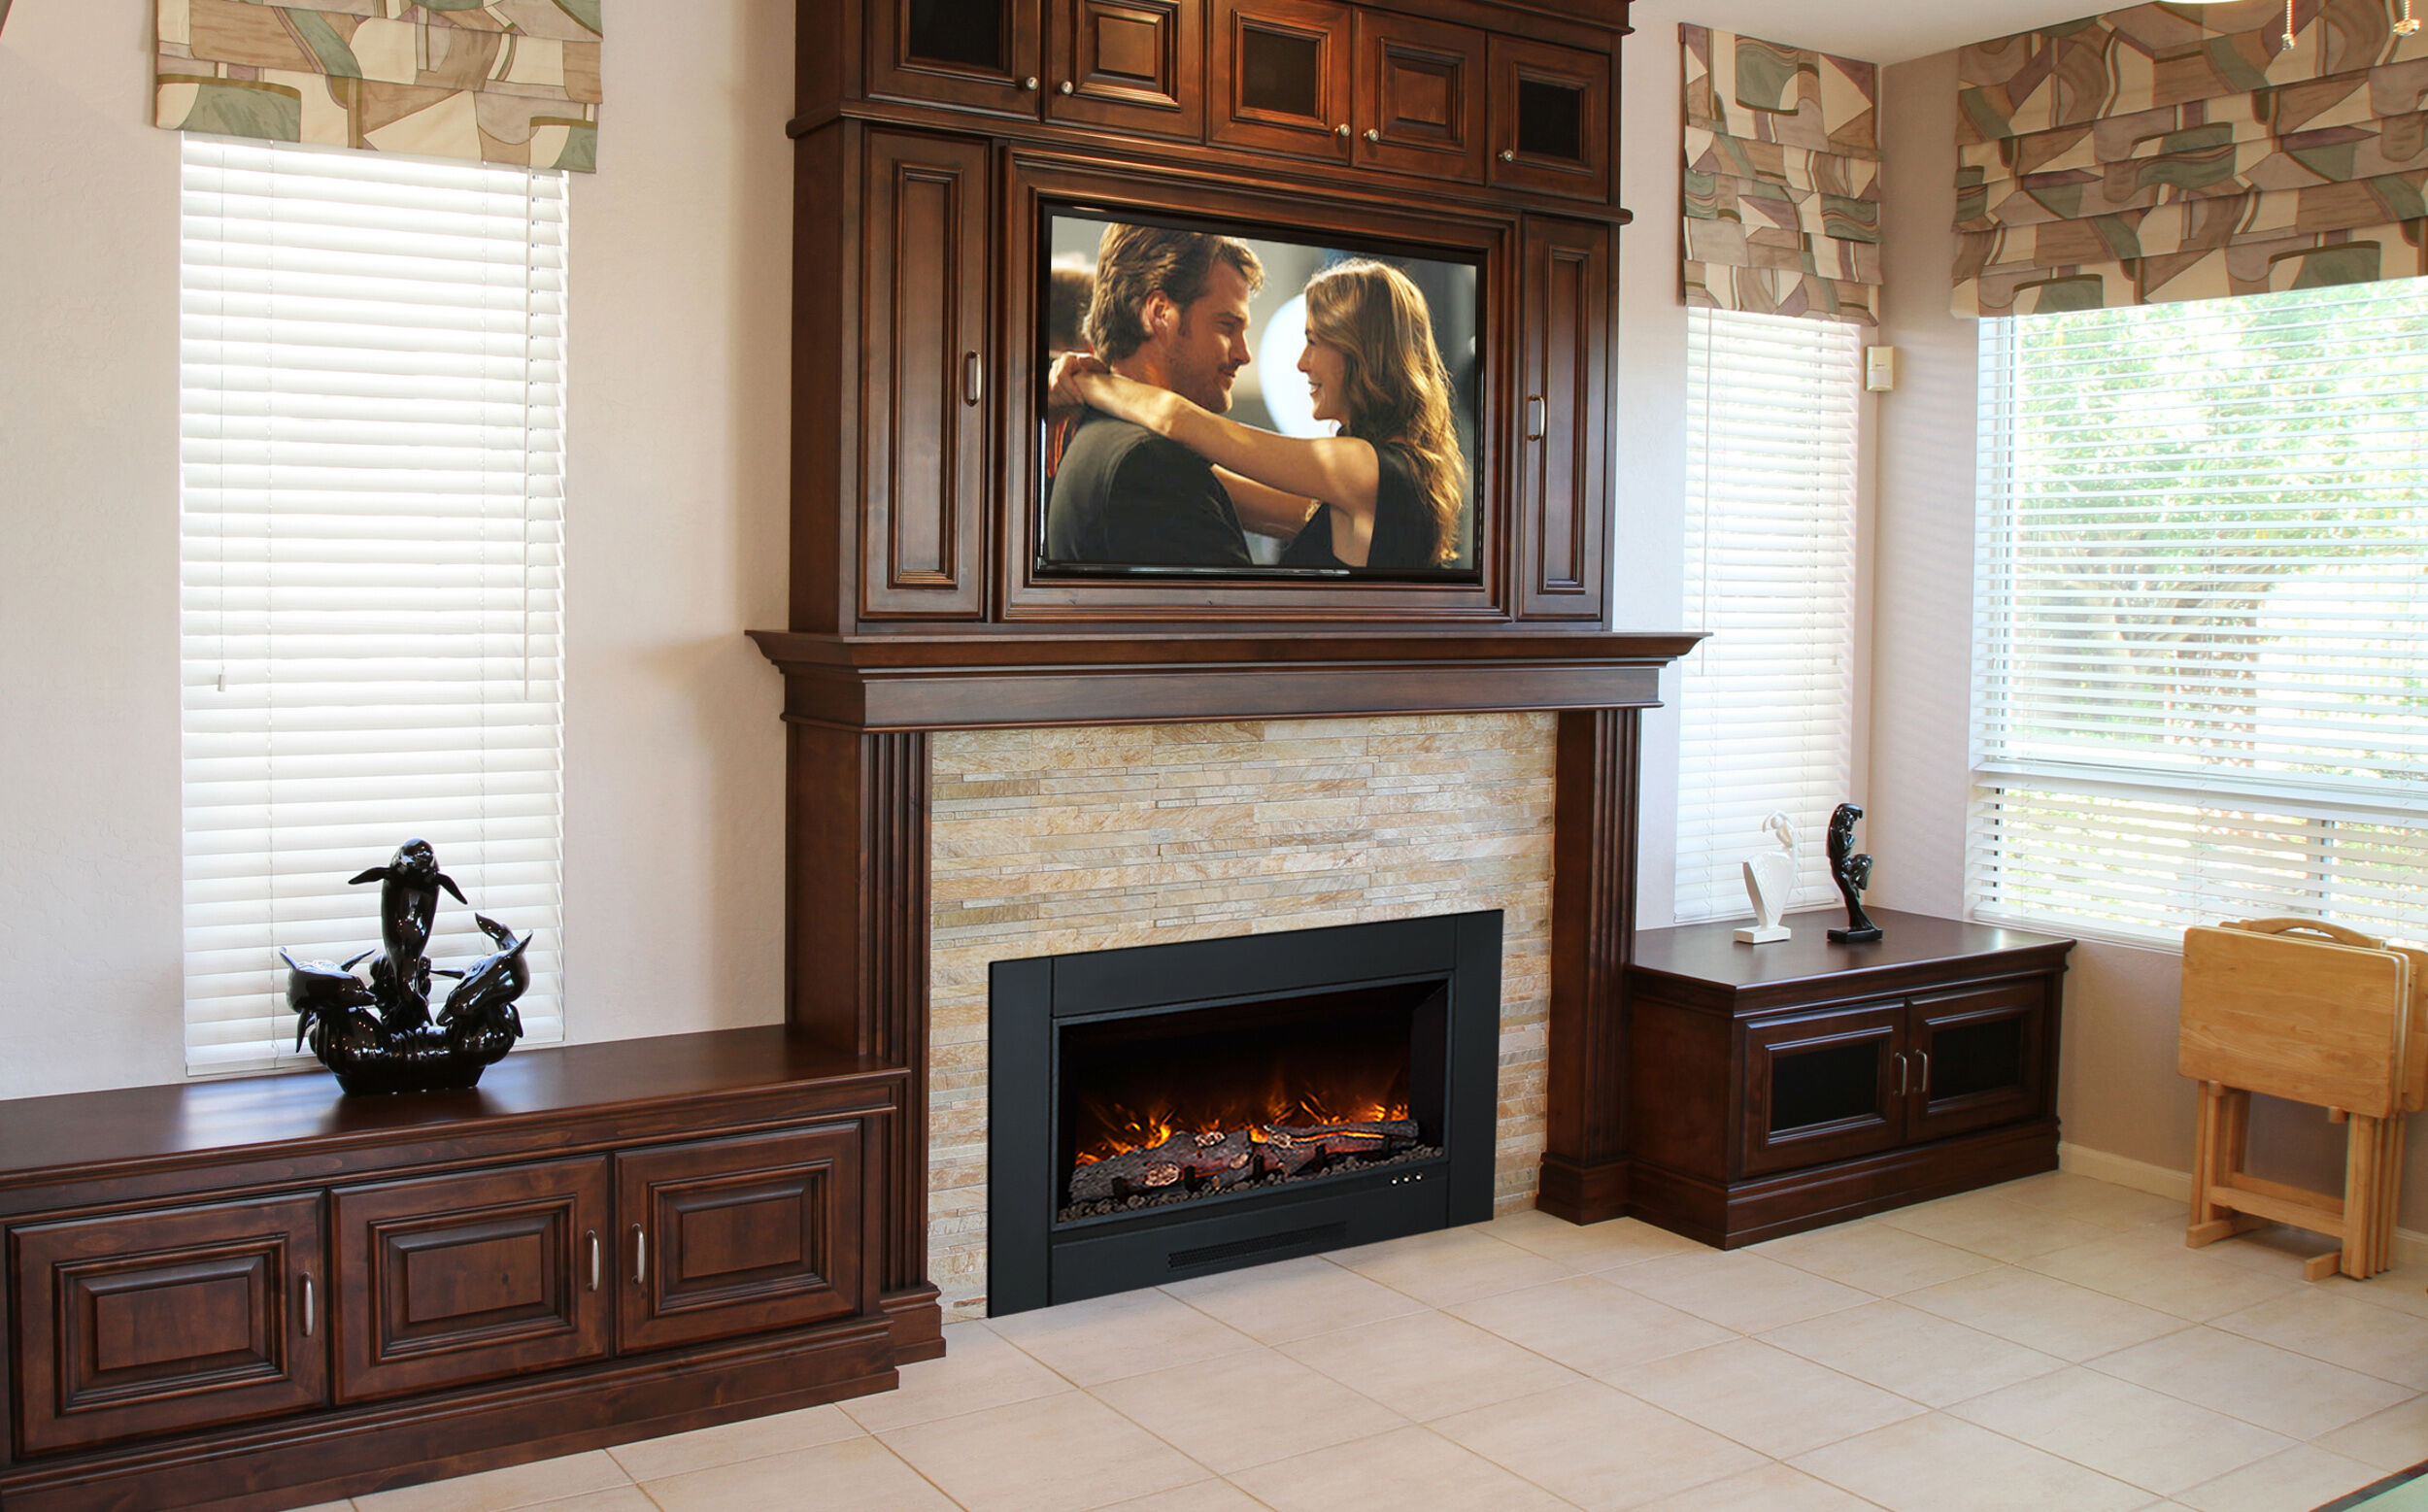 Can I Hang A Tv Over My Fireplace Woodlanddirect Com